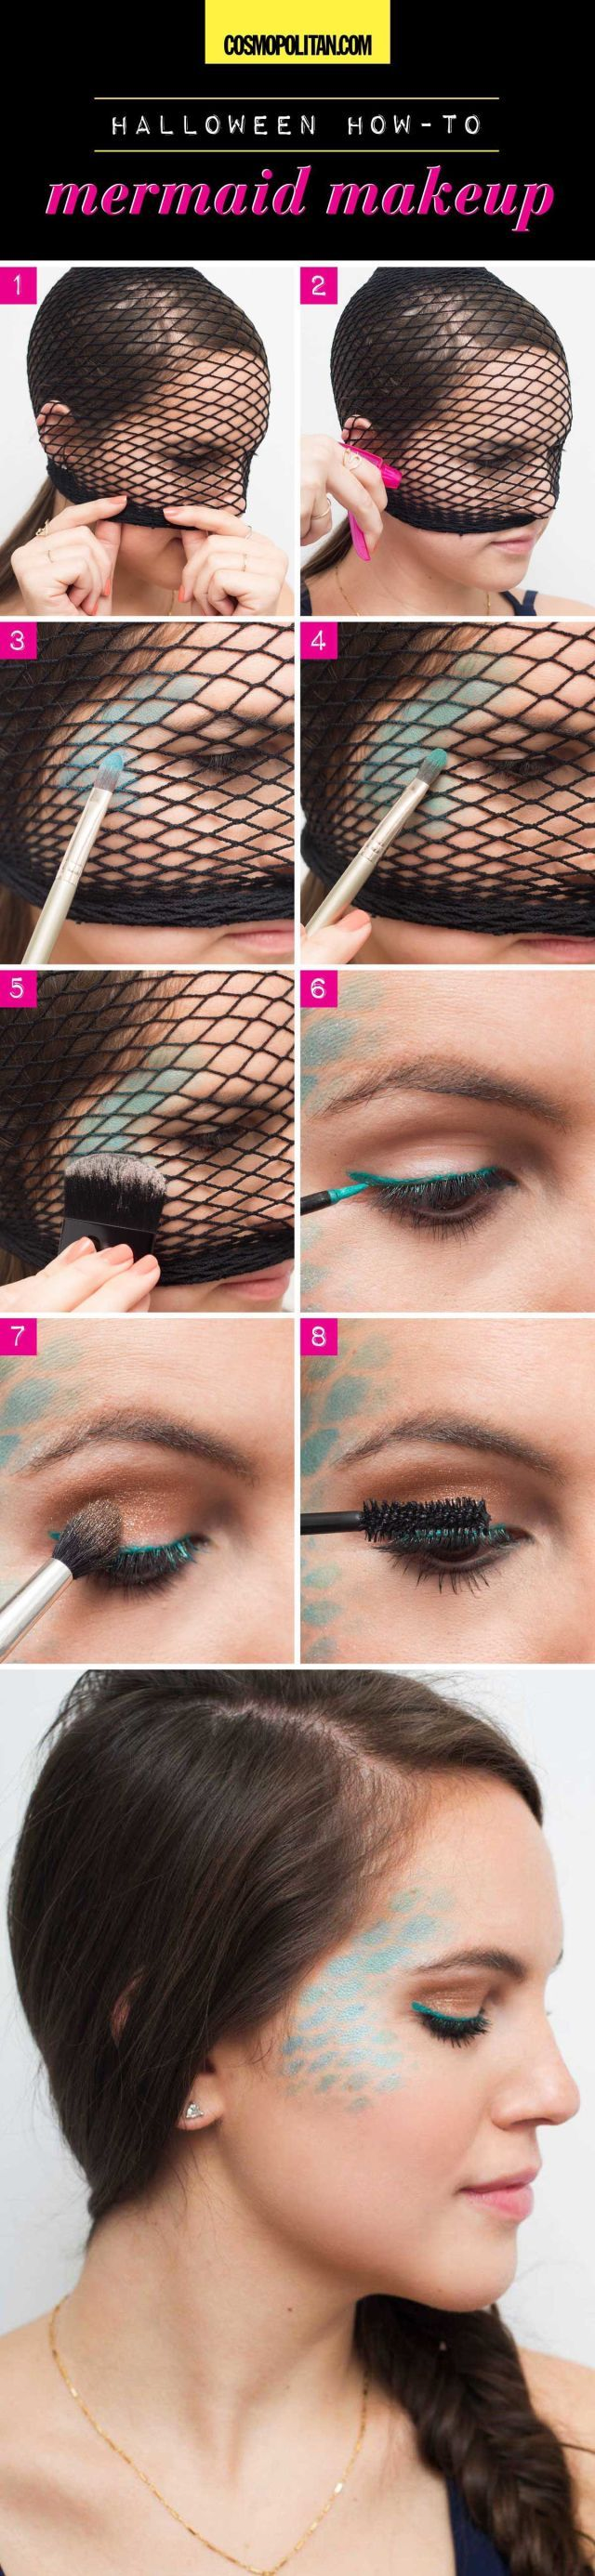 Halloween How-to: Mermaid Makeup ---- IDEIA EXCELENTE PARA MAQUIAGEM DE SEREIA PAR AO CARNAVAL